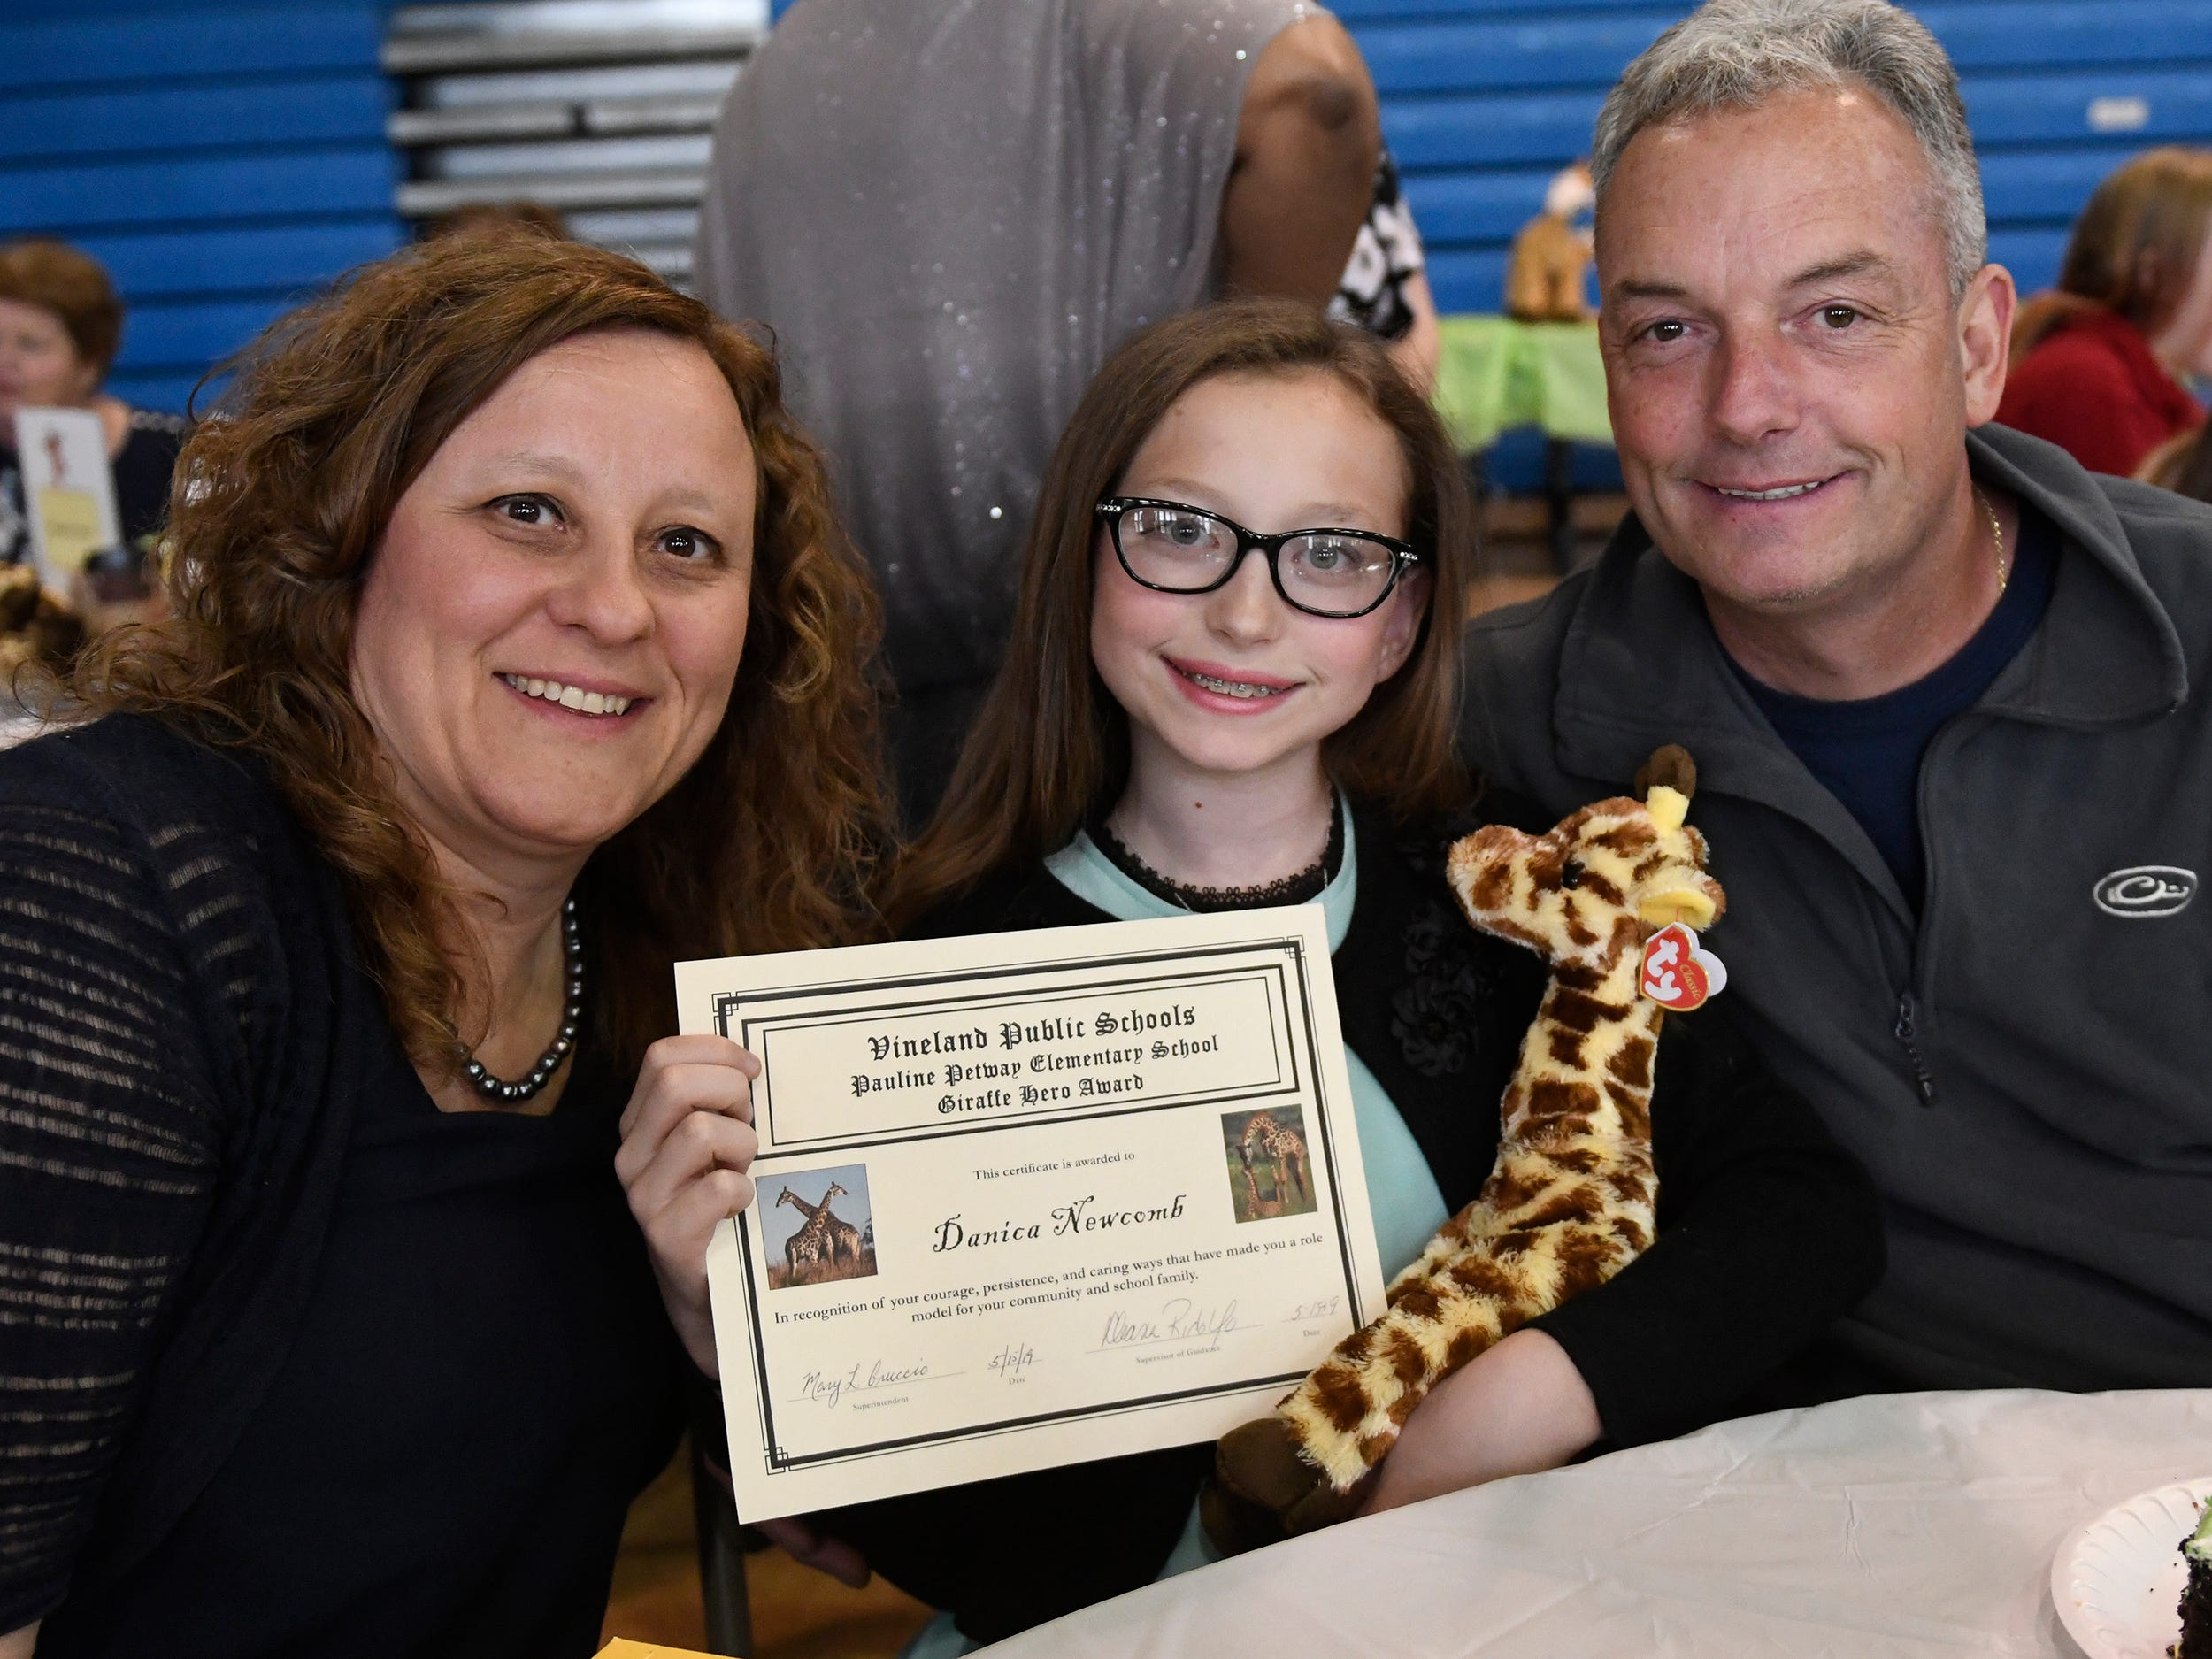 Petway Elementary School student Danica Newcomb was presented with a Giraffe Hero Award during a special ceremony on Wednesday, May 15, 2019.